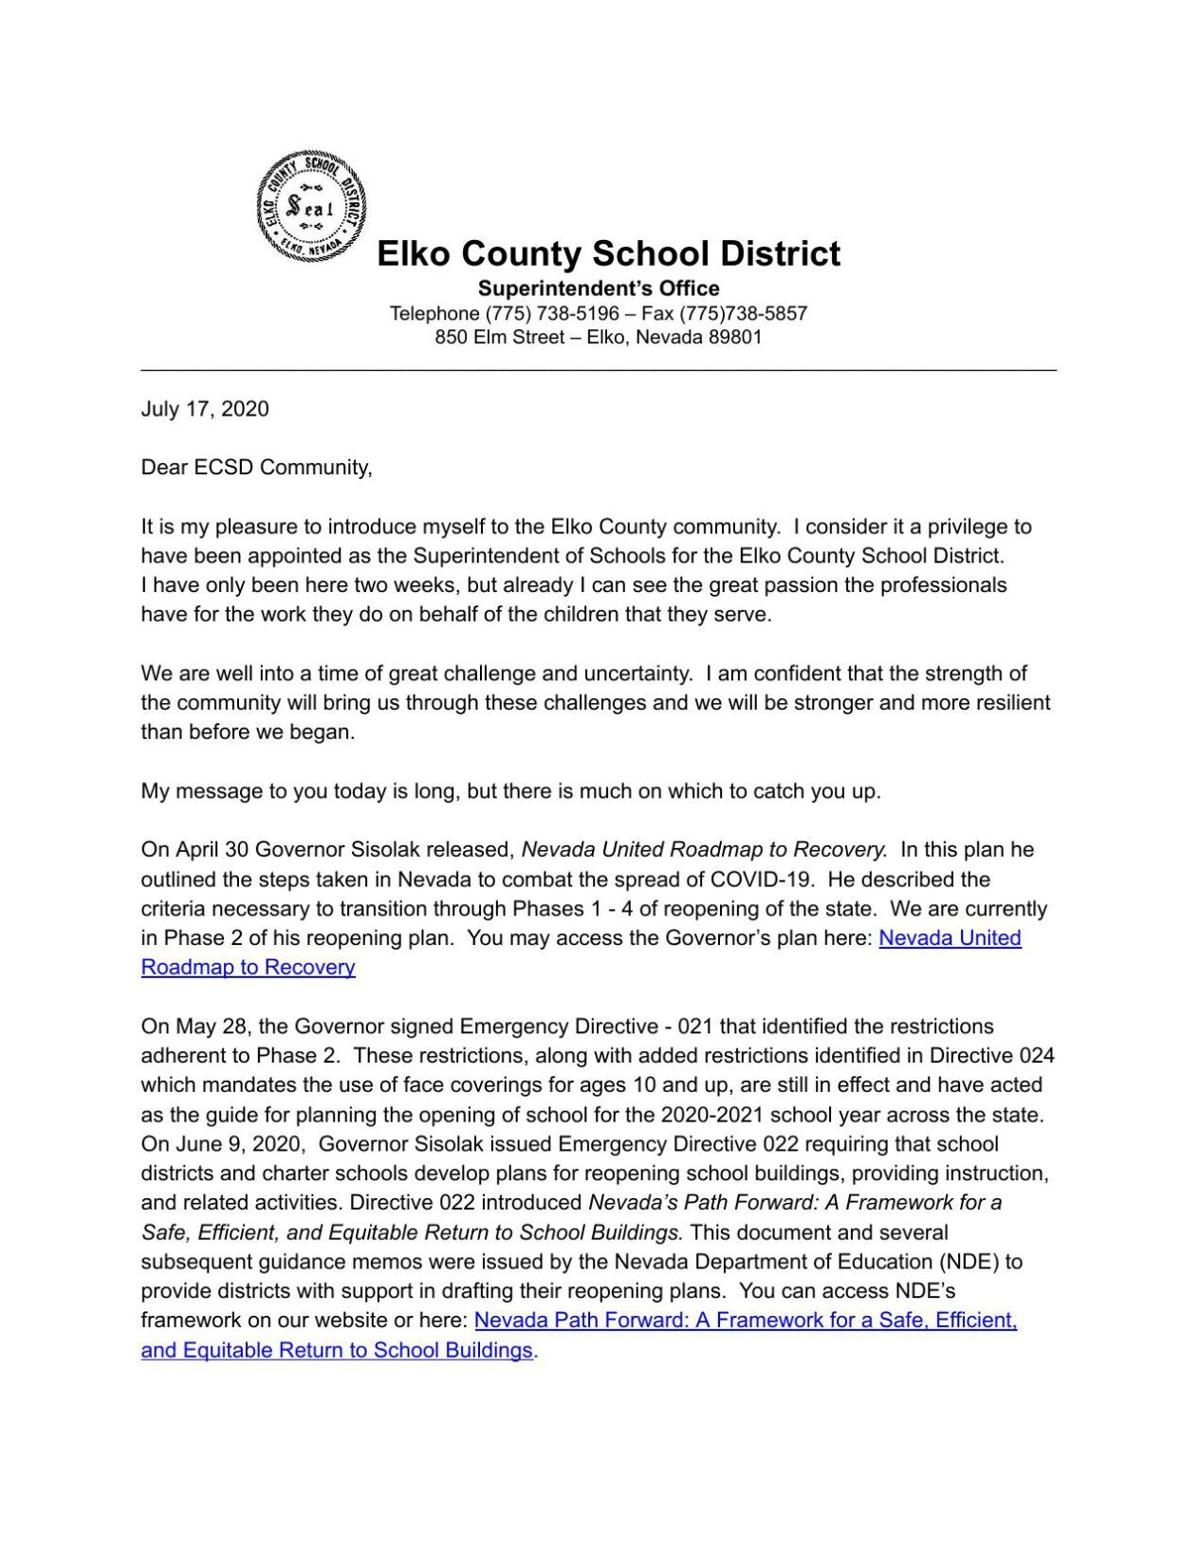 Superintendent Letter to the Community, July 17, 2020